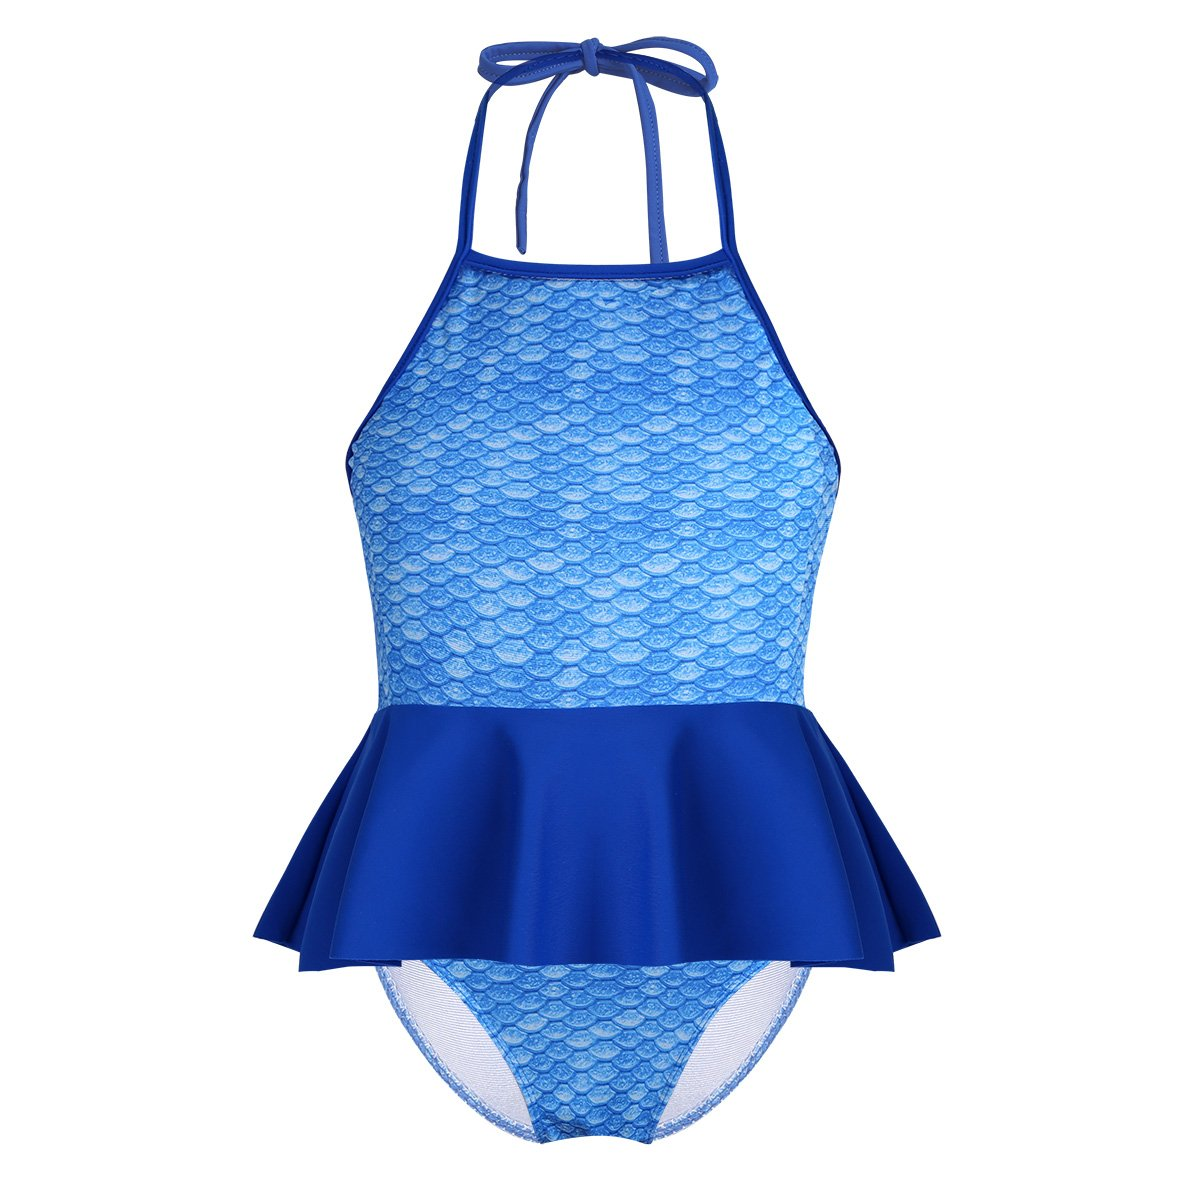 0f1a9e68f5e10 Amazon.com: TiaoBug Kids Girls 2PCS Tankini Bikini Mermaid Swimsuit Swimwear  Bathing Suit Halter Tops with Bottom Set: Clothing